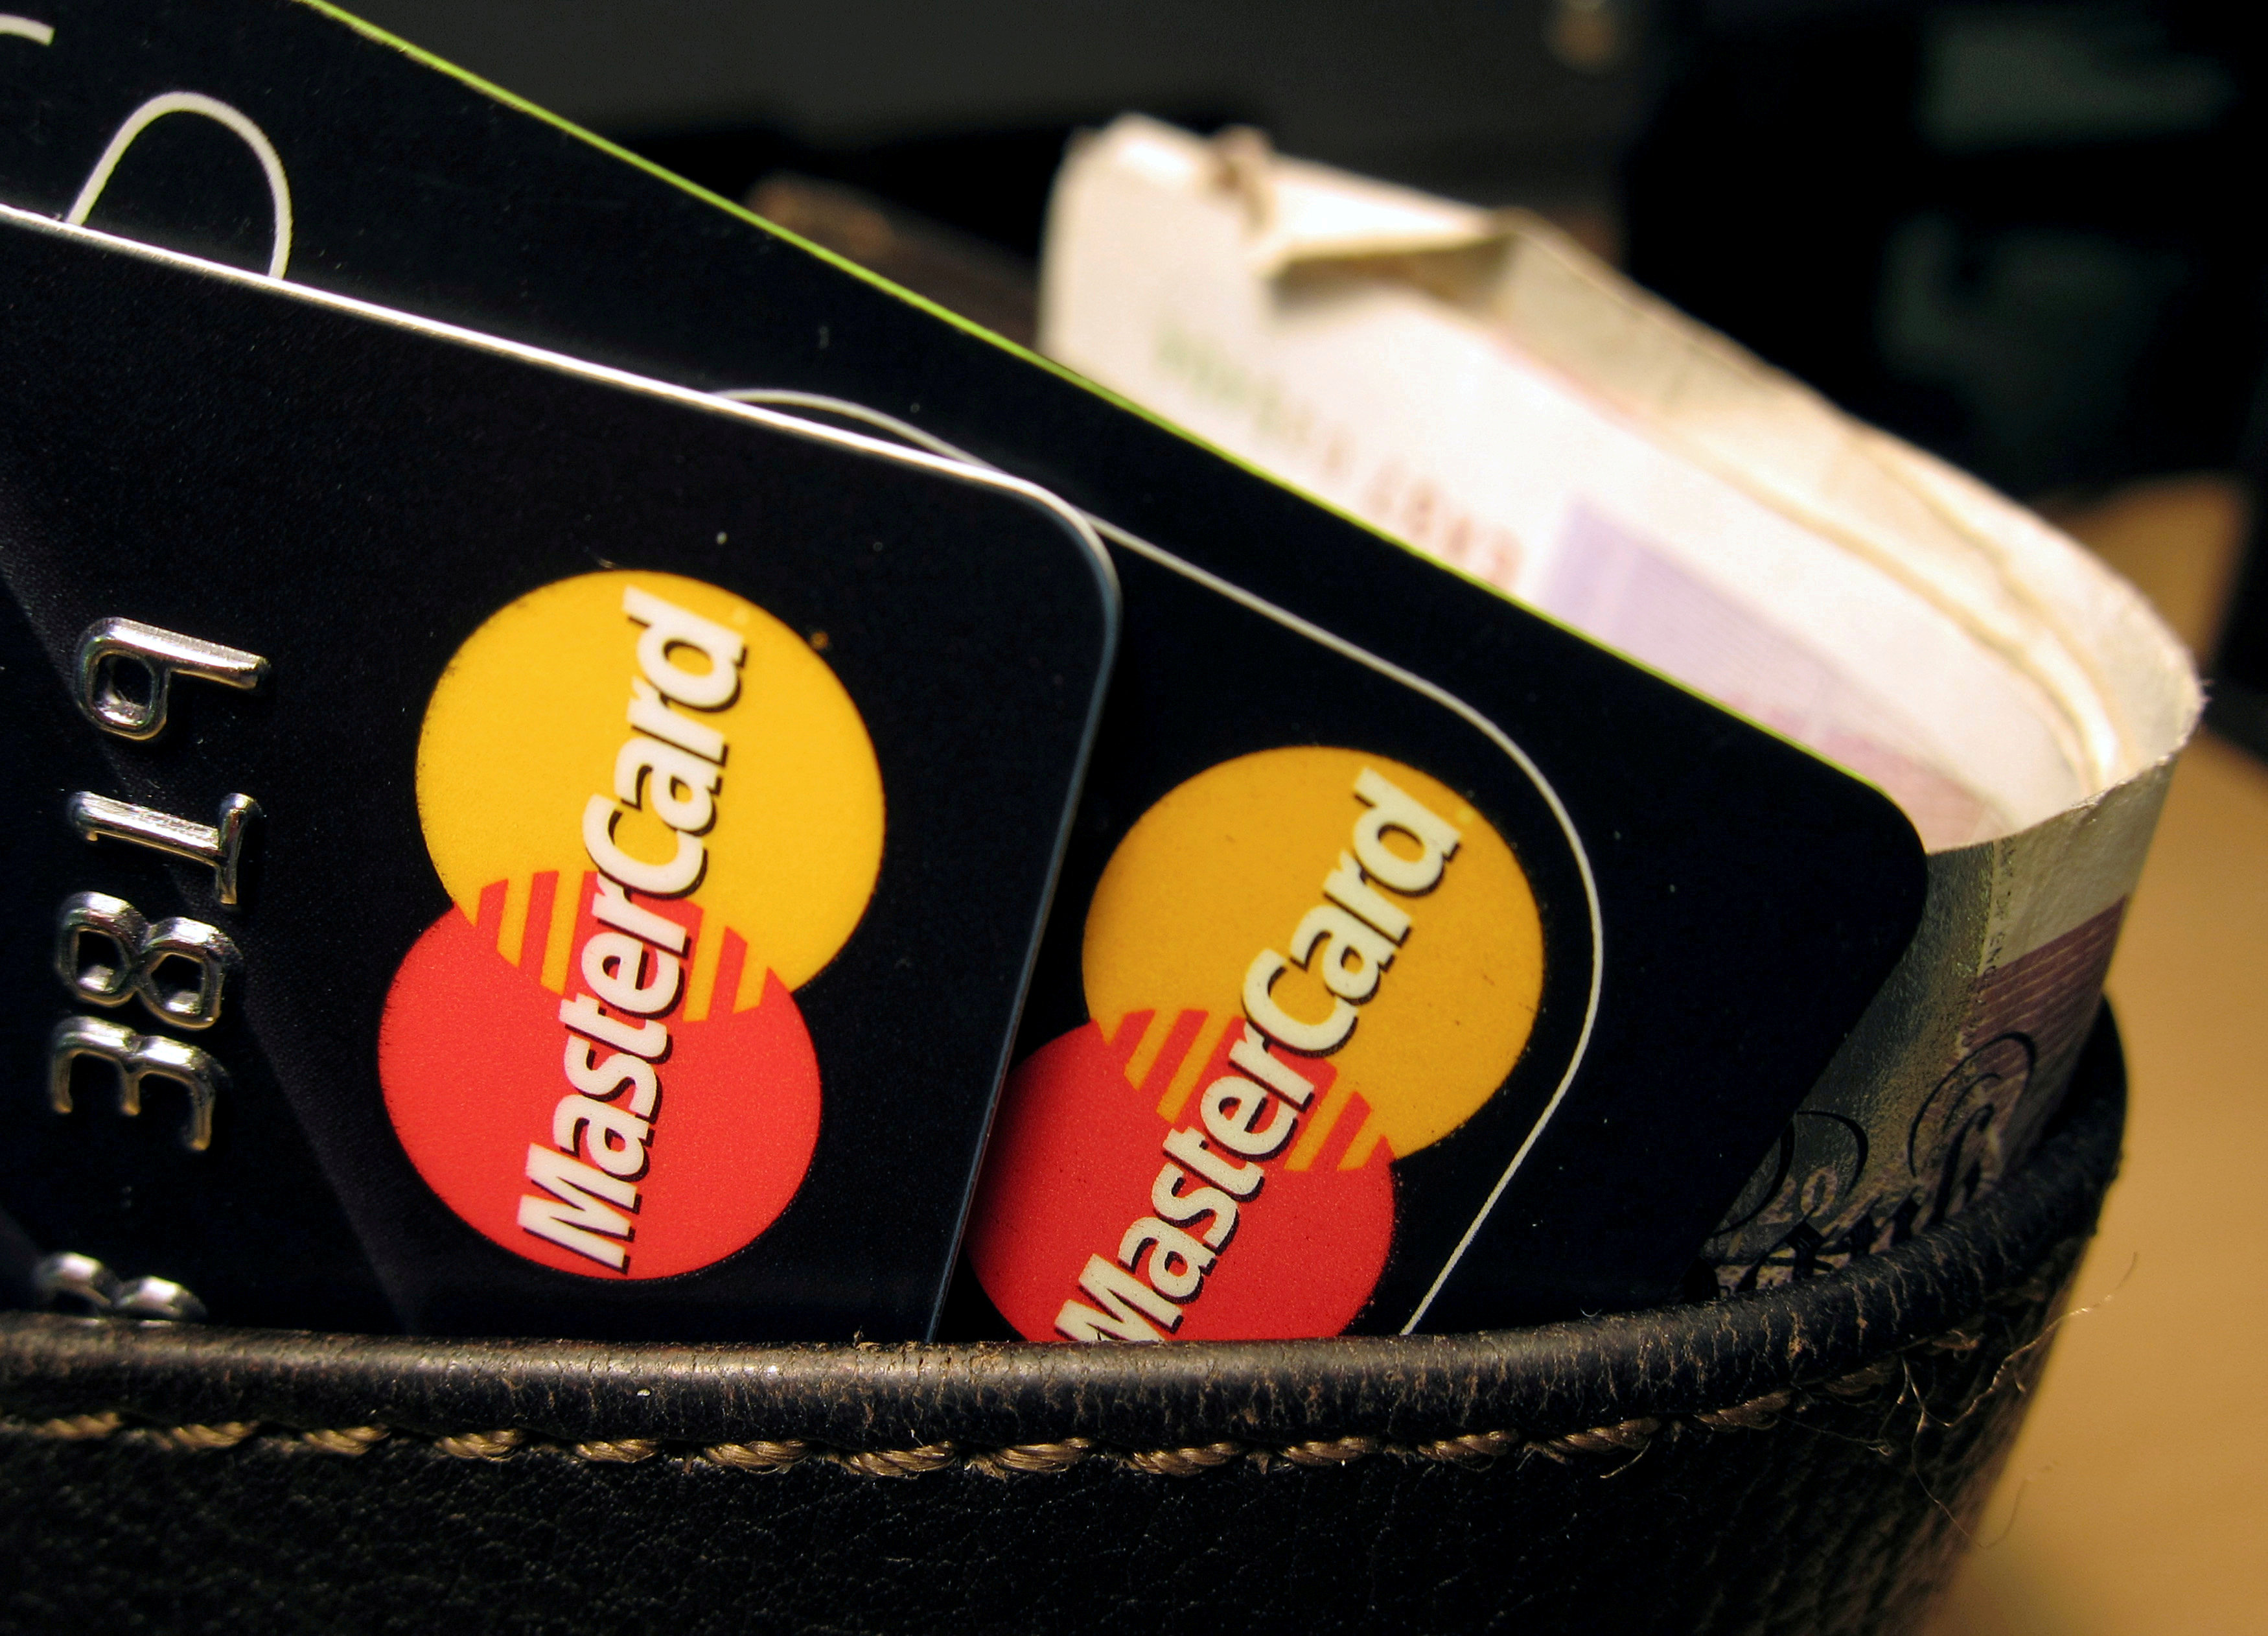 Mastercard faces £14bn compensation claim